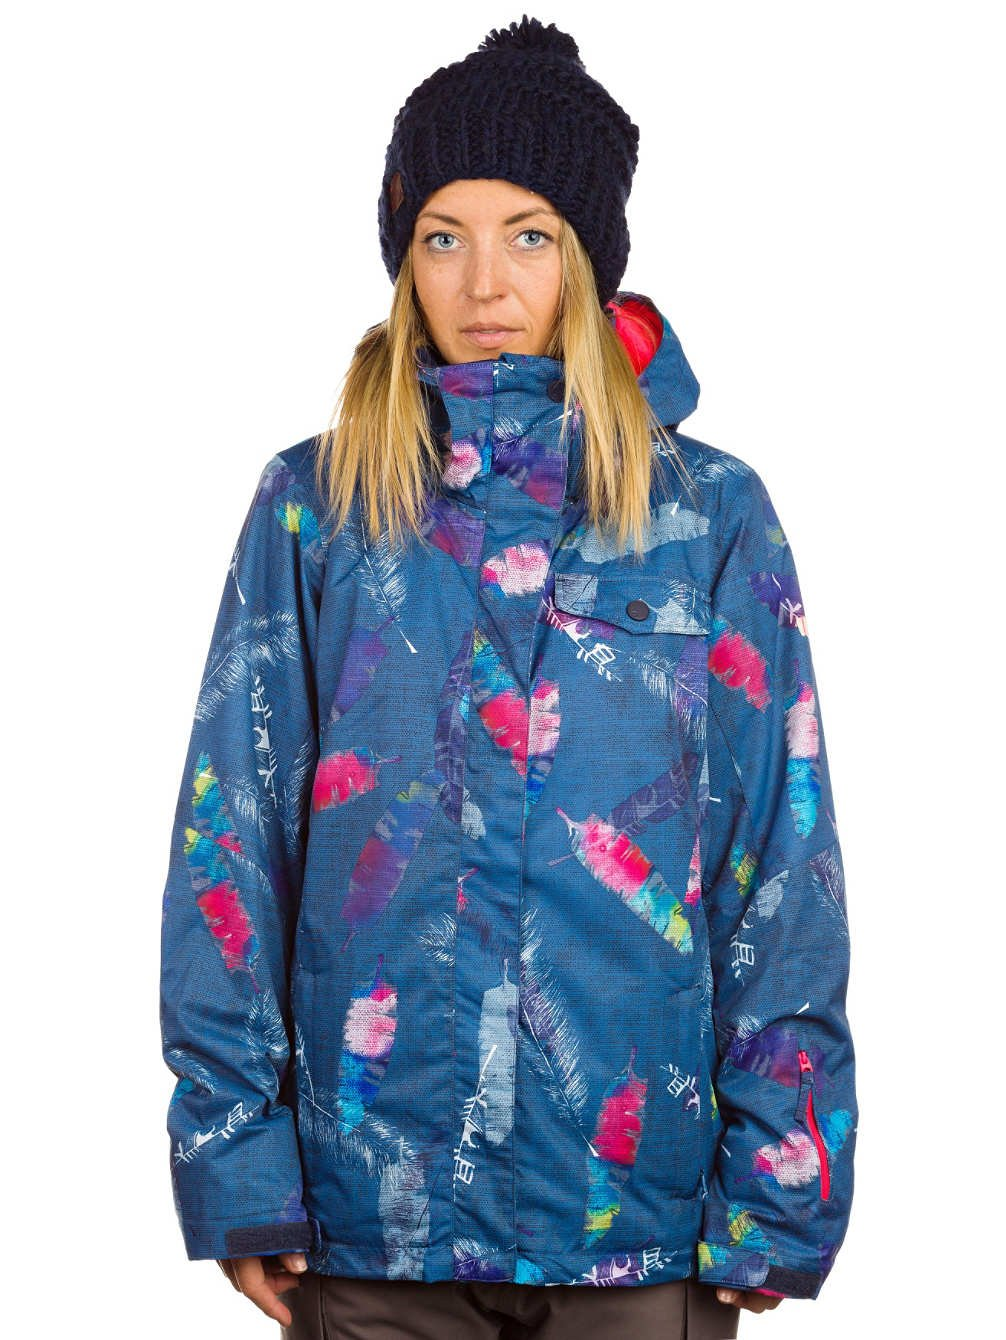 Roxy Damen Snowboard Jacke Jetty Jacket